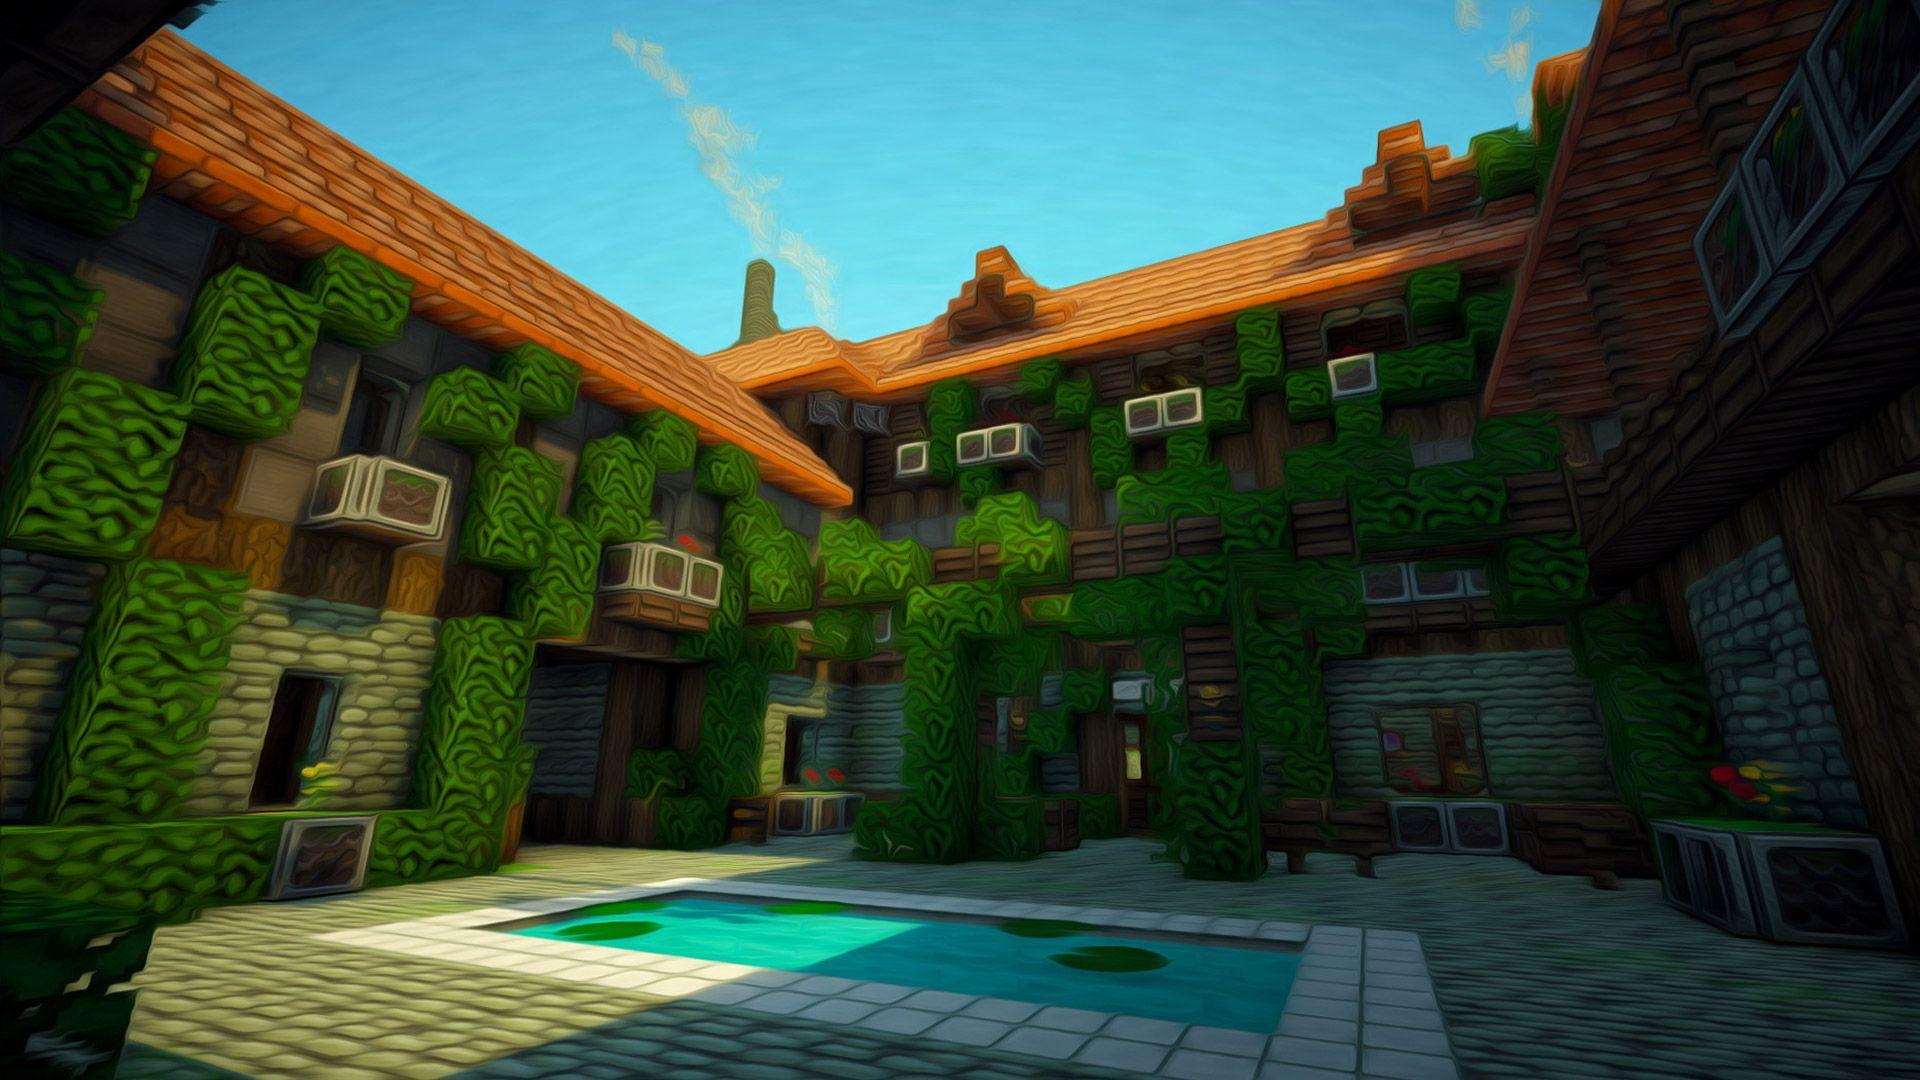 Hd Game Wallpapers 1080P Minecraft Backgrounds 1 HD Wallpapers